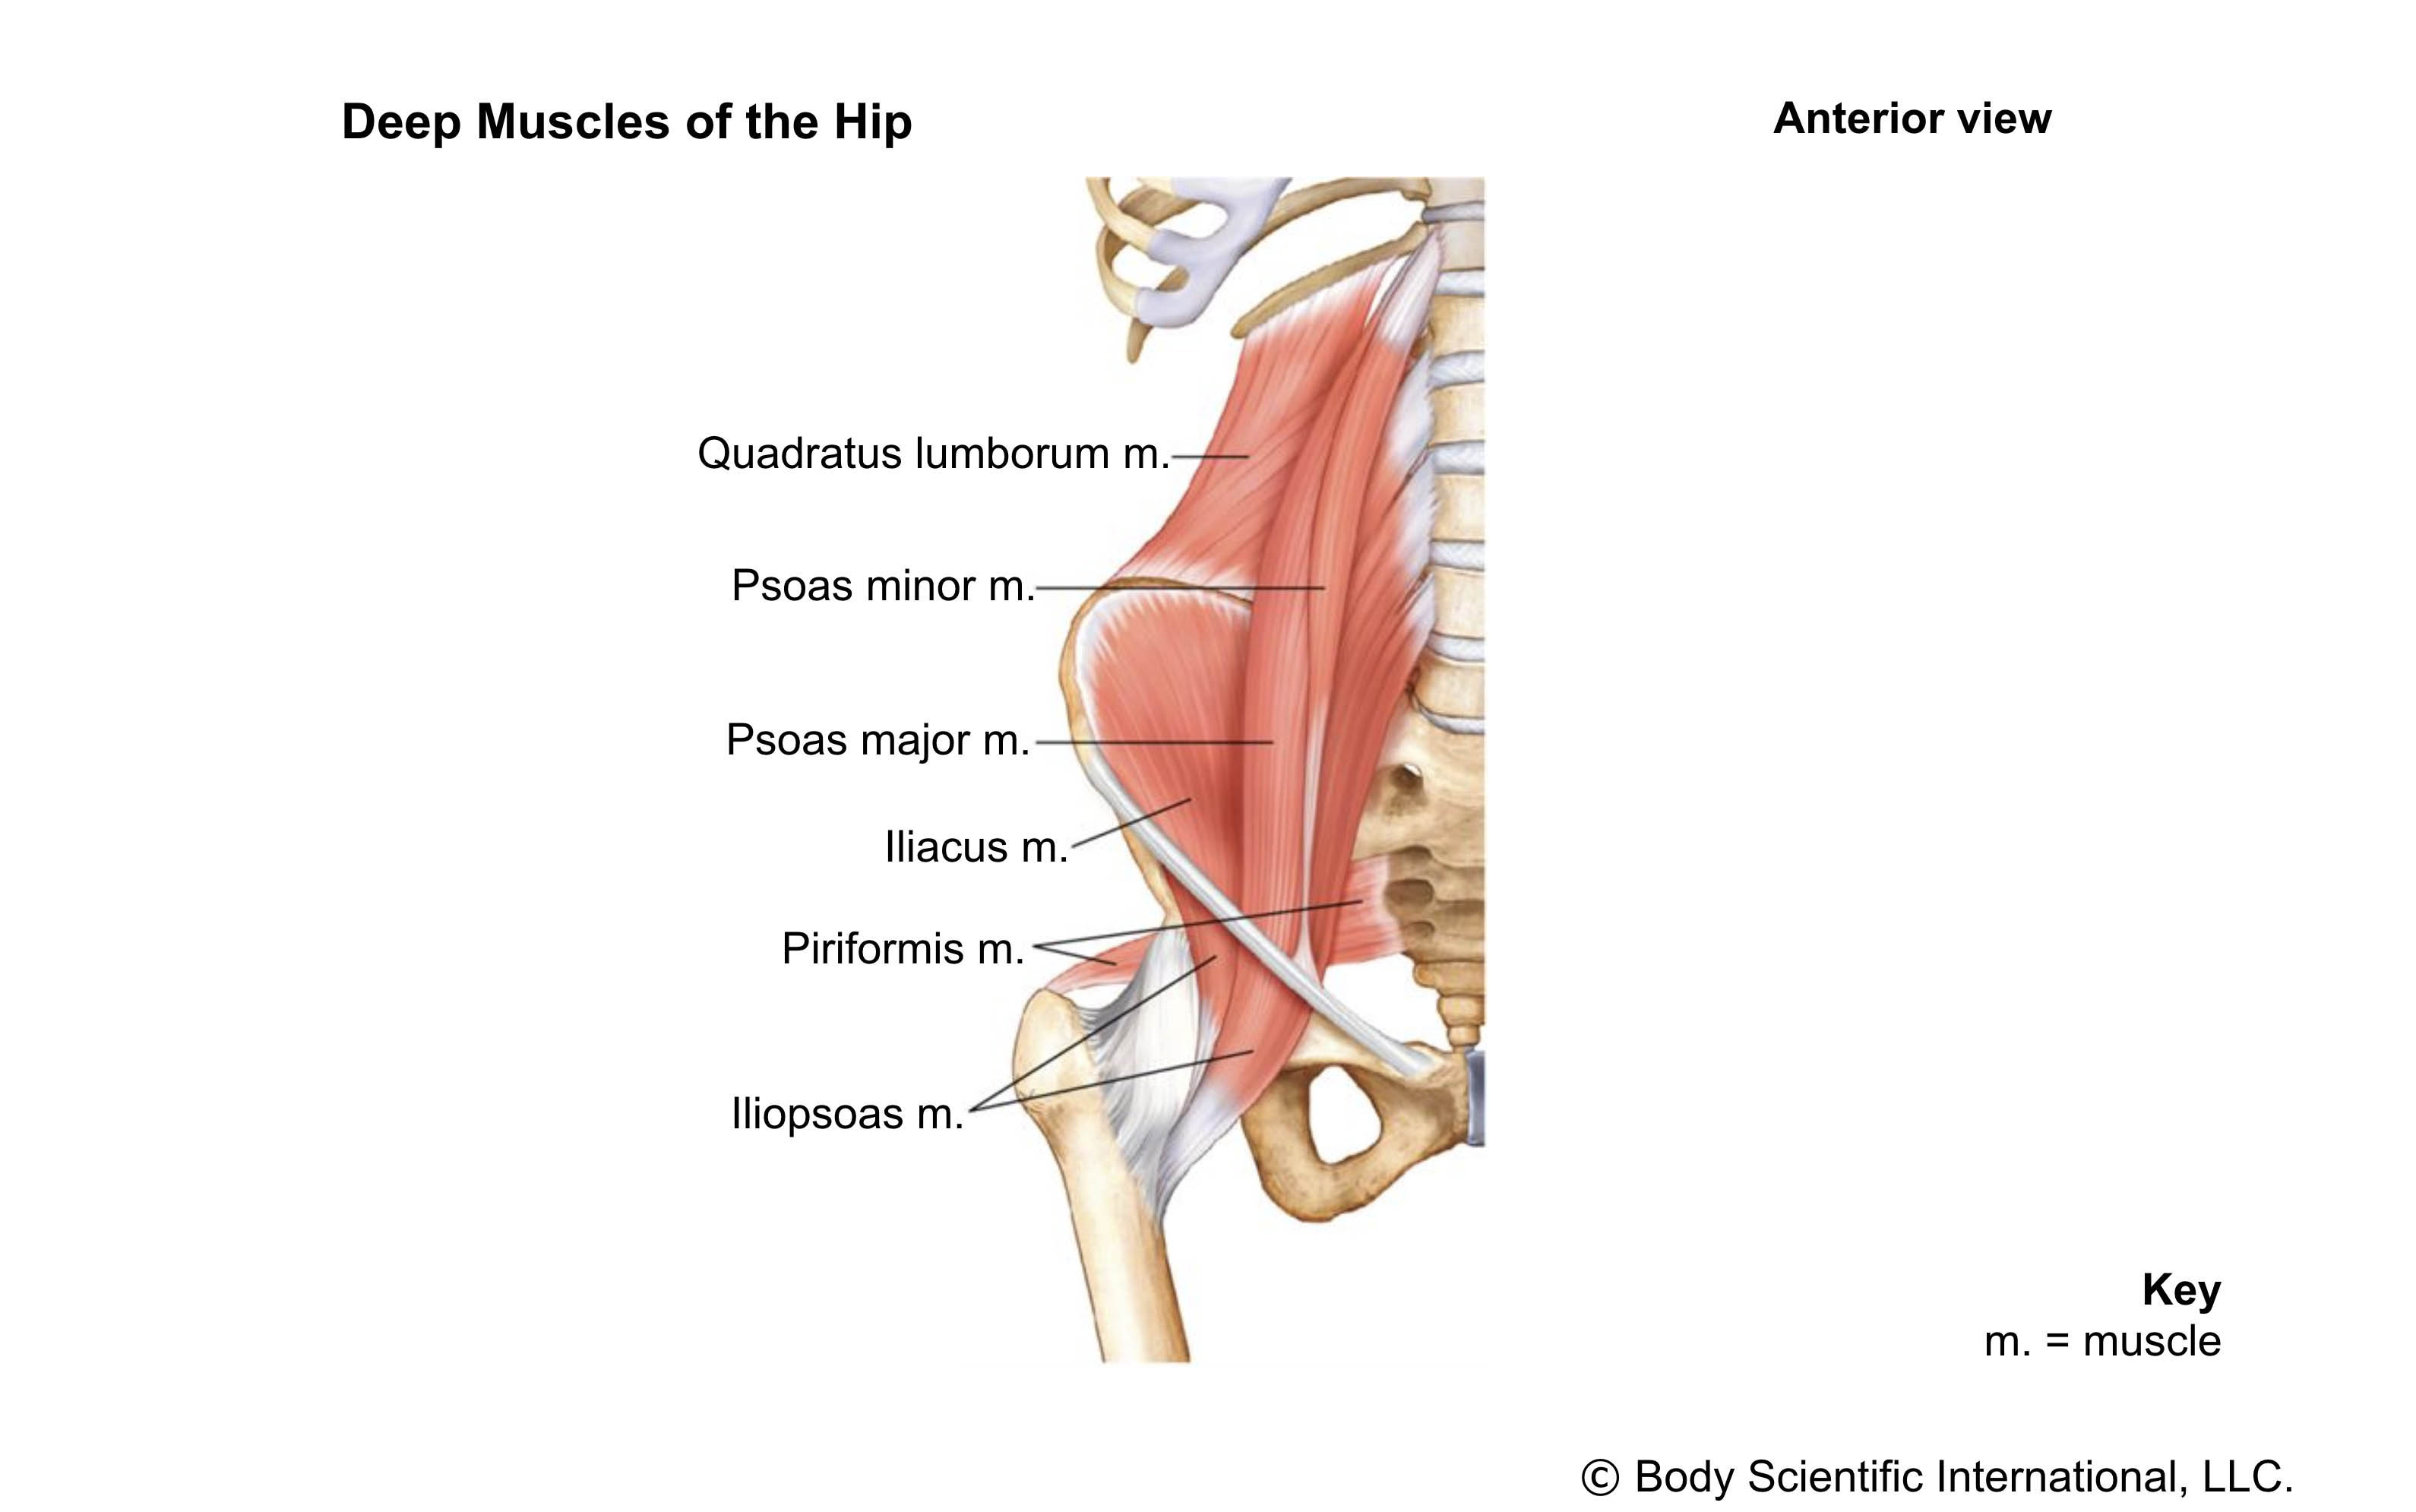 Deep Hip Muscles